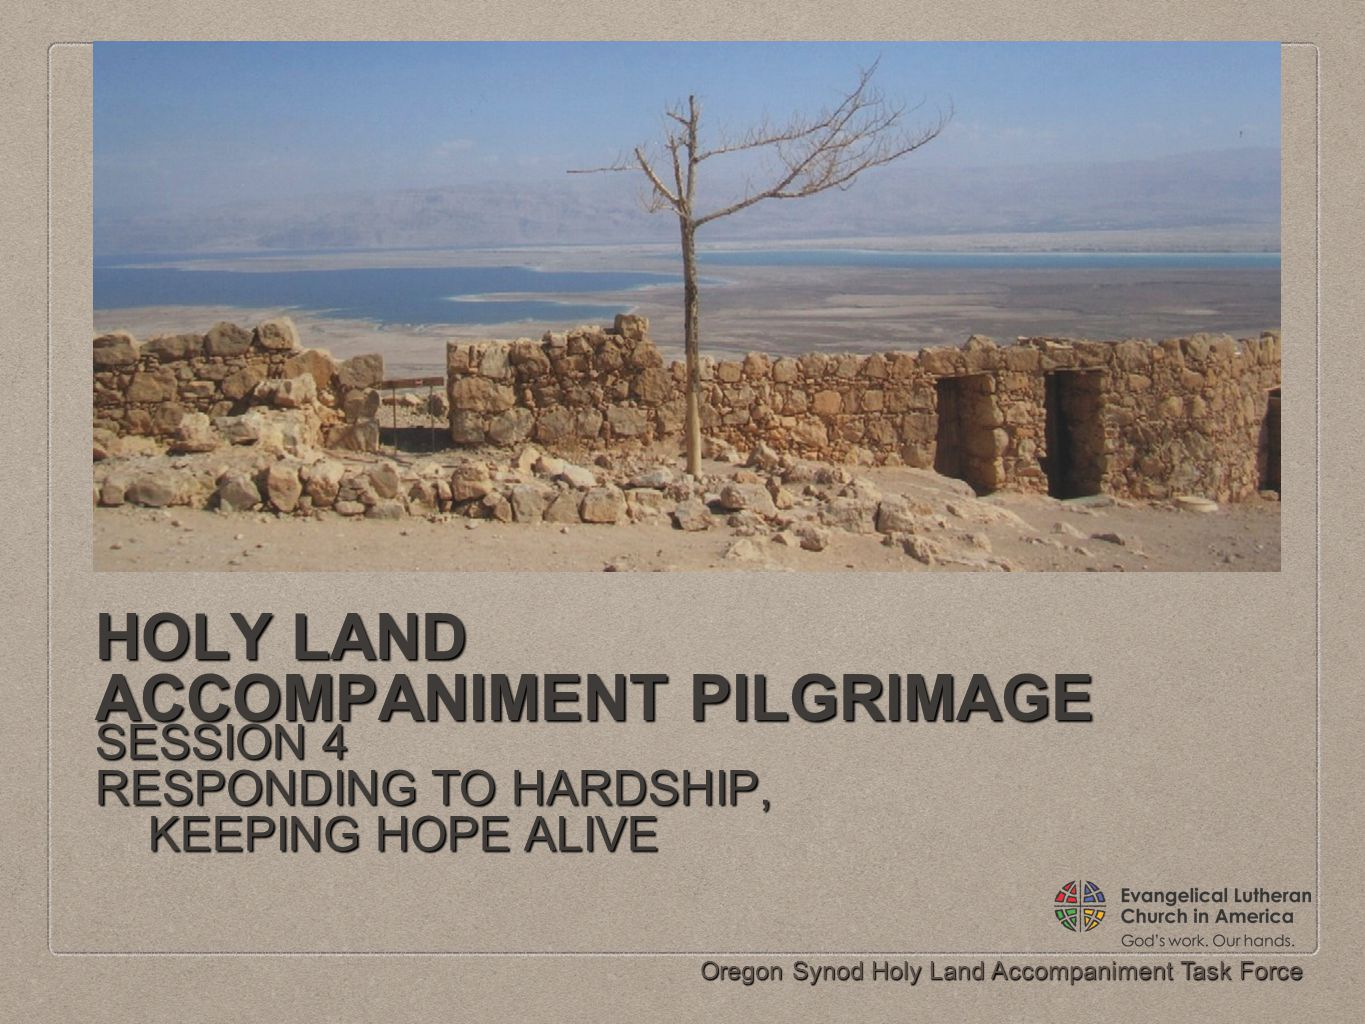 Oregon Synod Holy Land Accompaniment Task Force HOLY LAND ACCOMPANIMENT PILGRIMAGE SESSION 4 RESPONDING TO HARDSHIP, KEEPING HOPE ALIVE